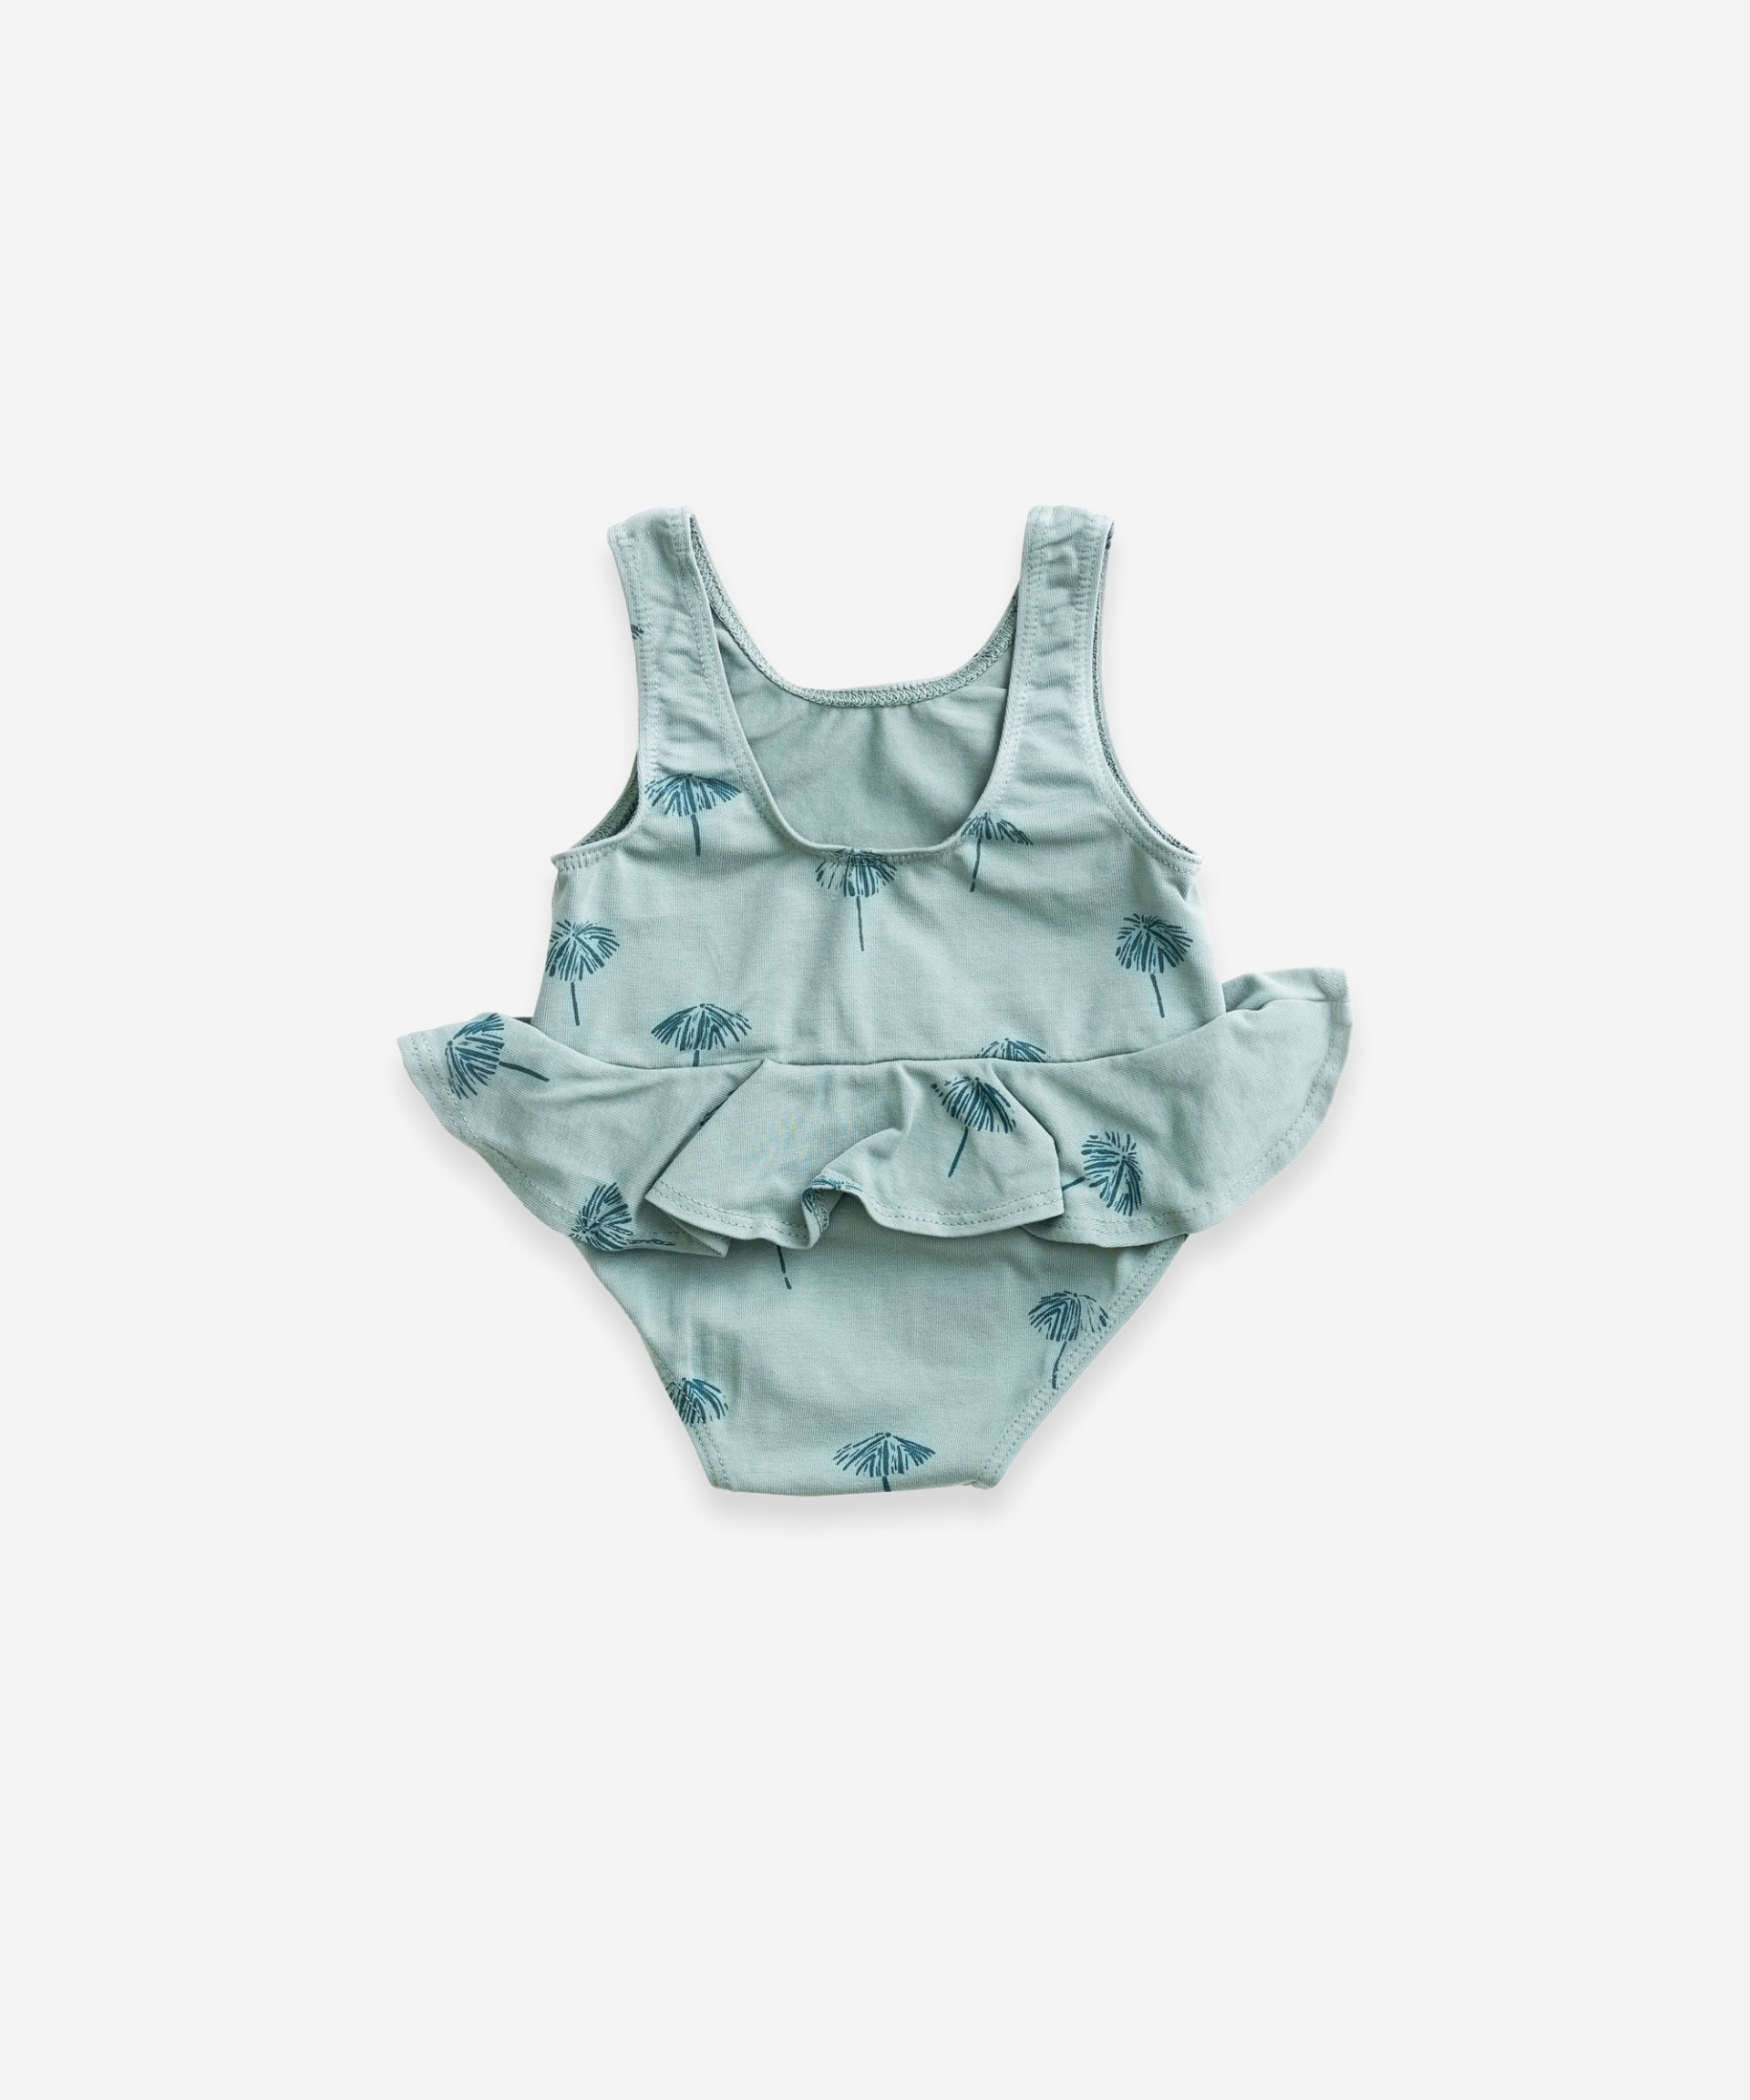 Swimsuit in organic cotton | Weaving